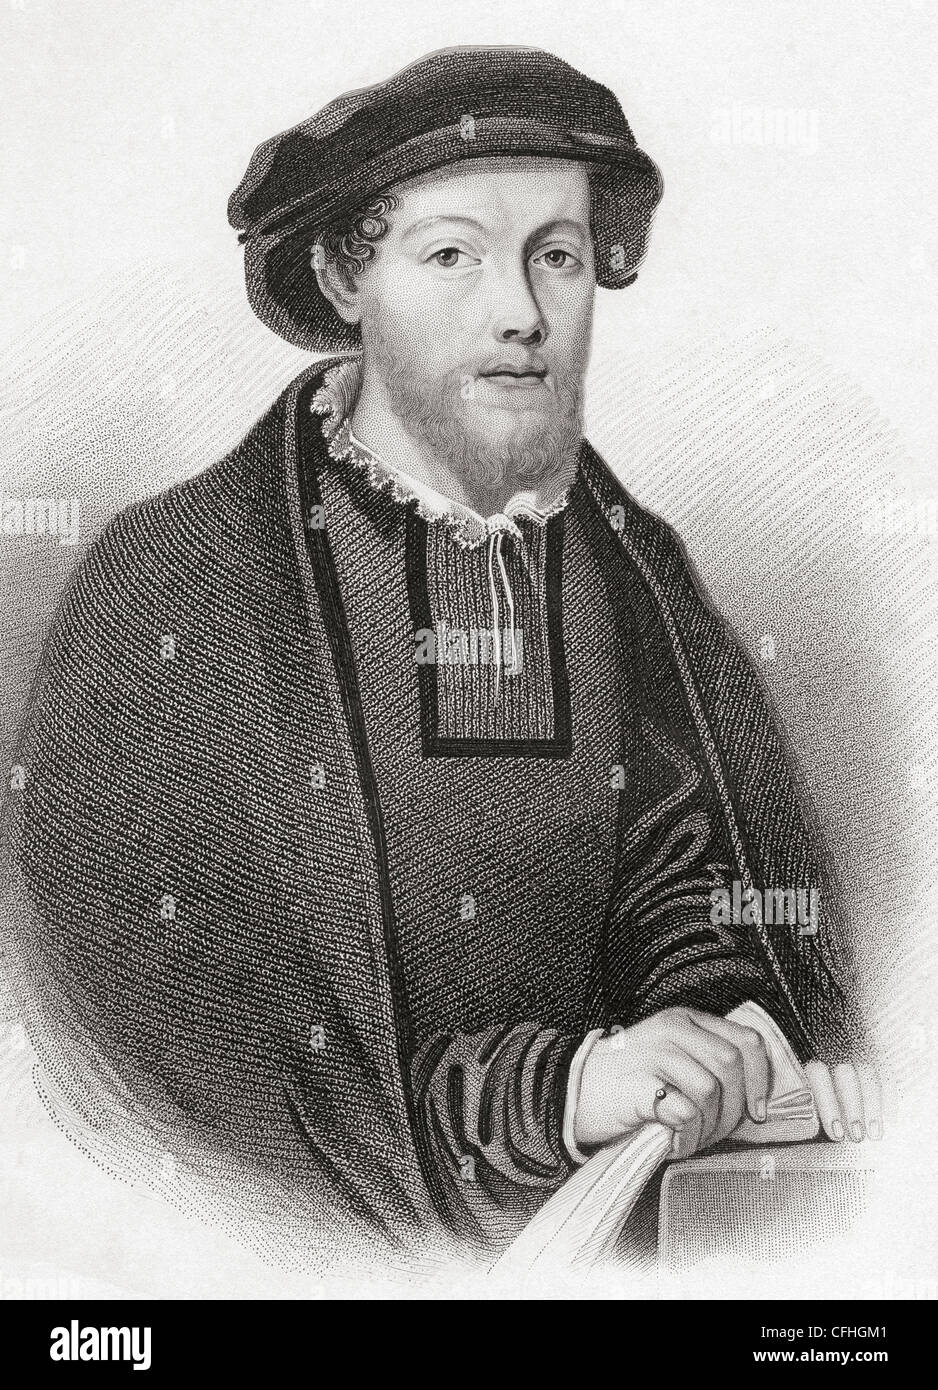 George Wishart 1513 – 1546. Scottish religious reformer and Protestant martyr. - Stock Image